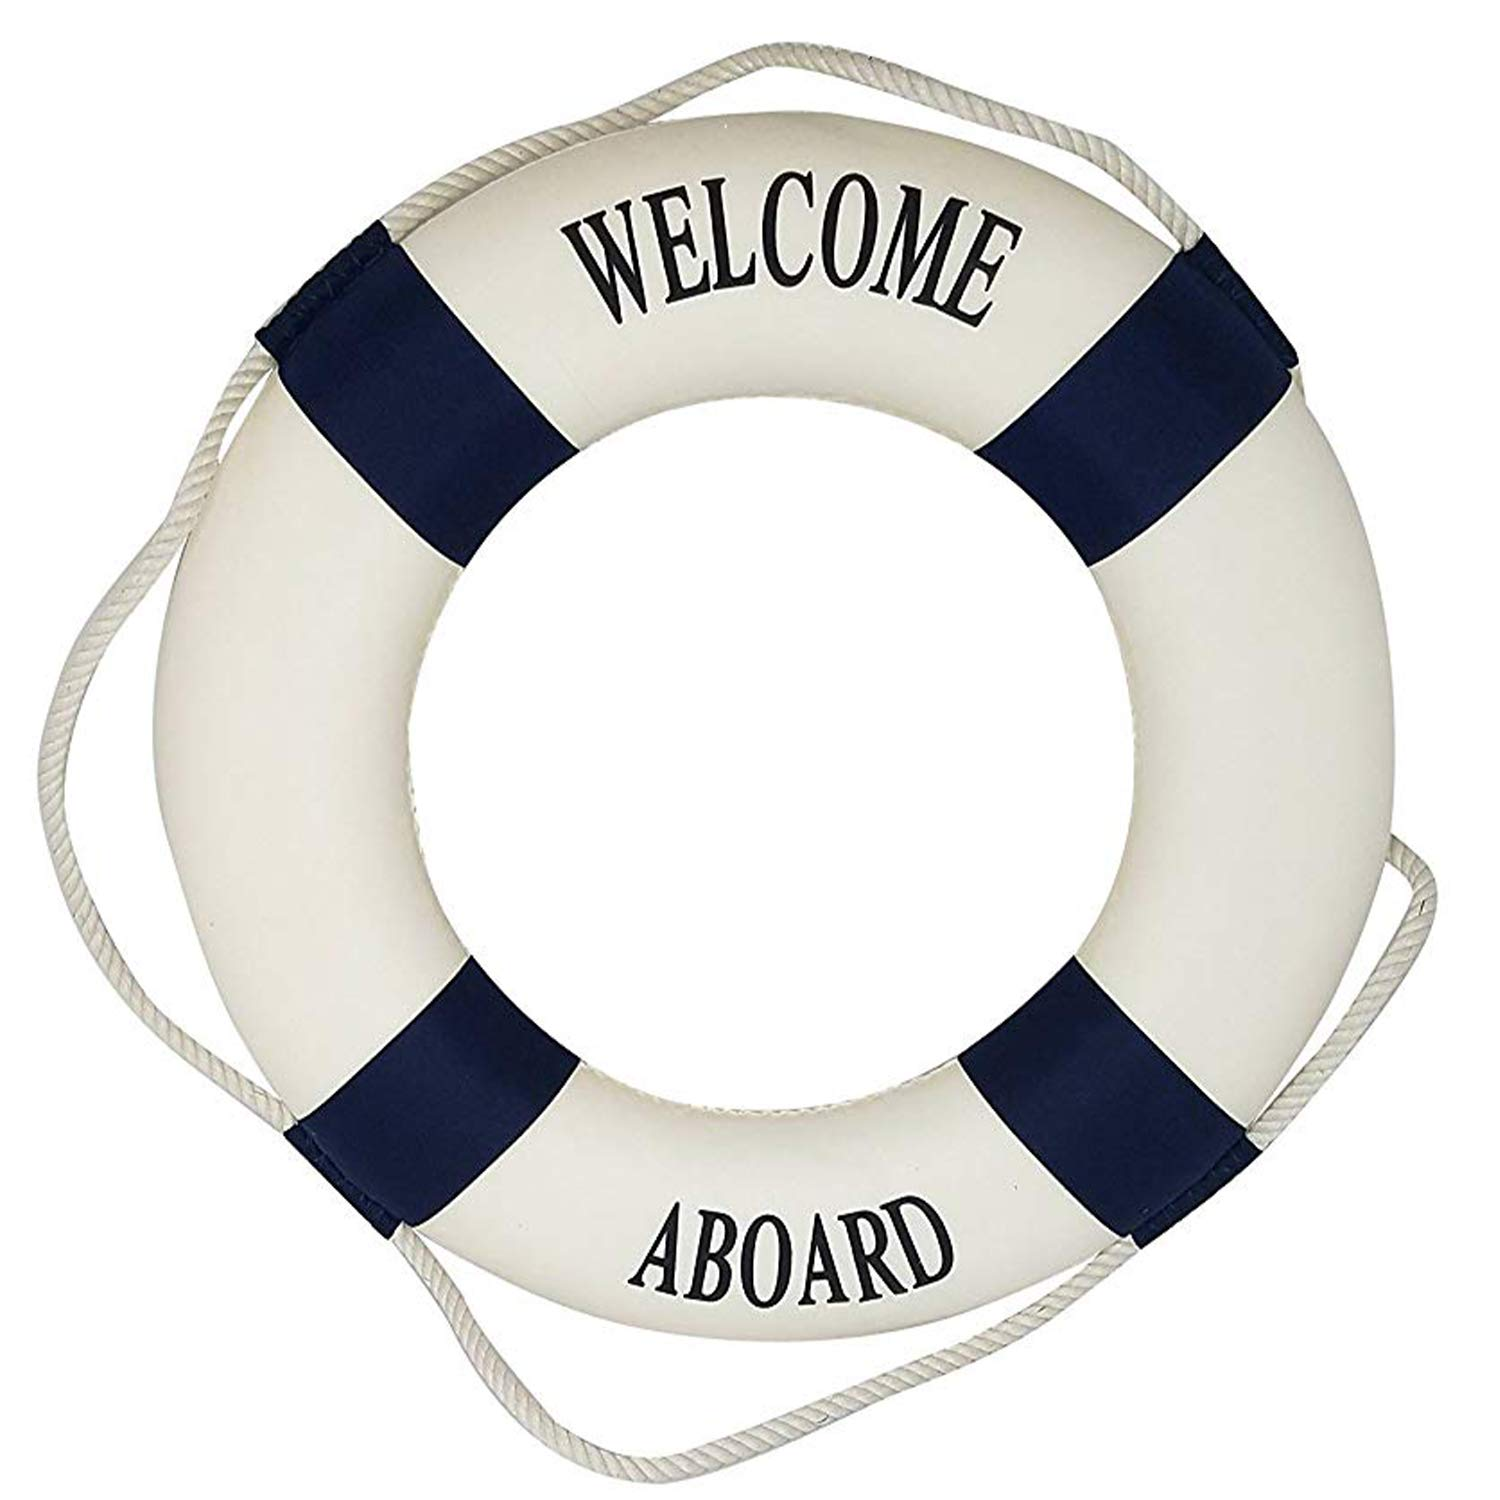 Royal Brands Welcome Aboard - Nautical Decorative Life Ring Buoy - Home Wall Decor - Nautical Decor - Decorative Life Ring Preserver (20x3.5x20)